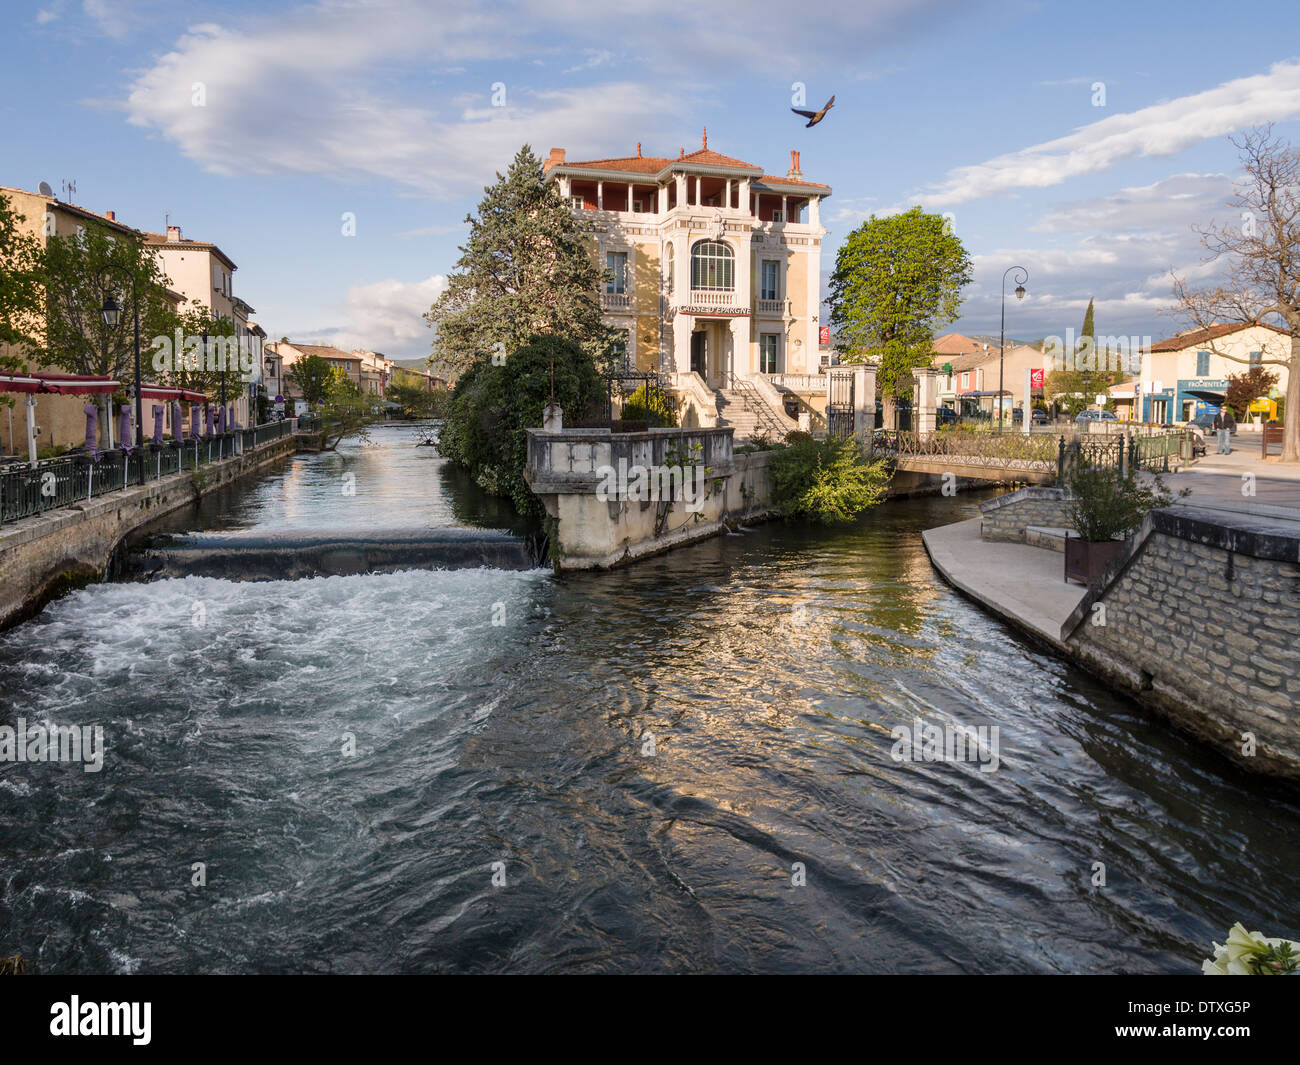 At the confluence a duck takes off. At the joining of two of the many streams in this small Provençal town - Stock Image